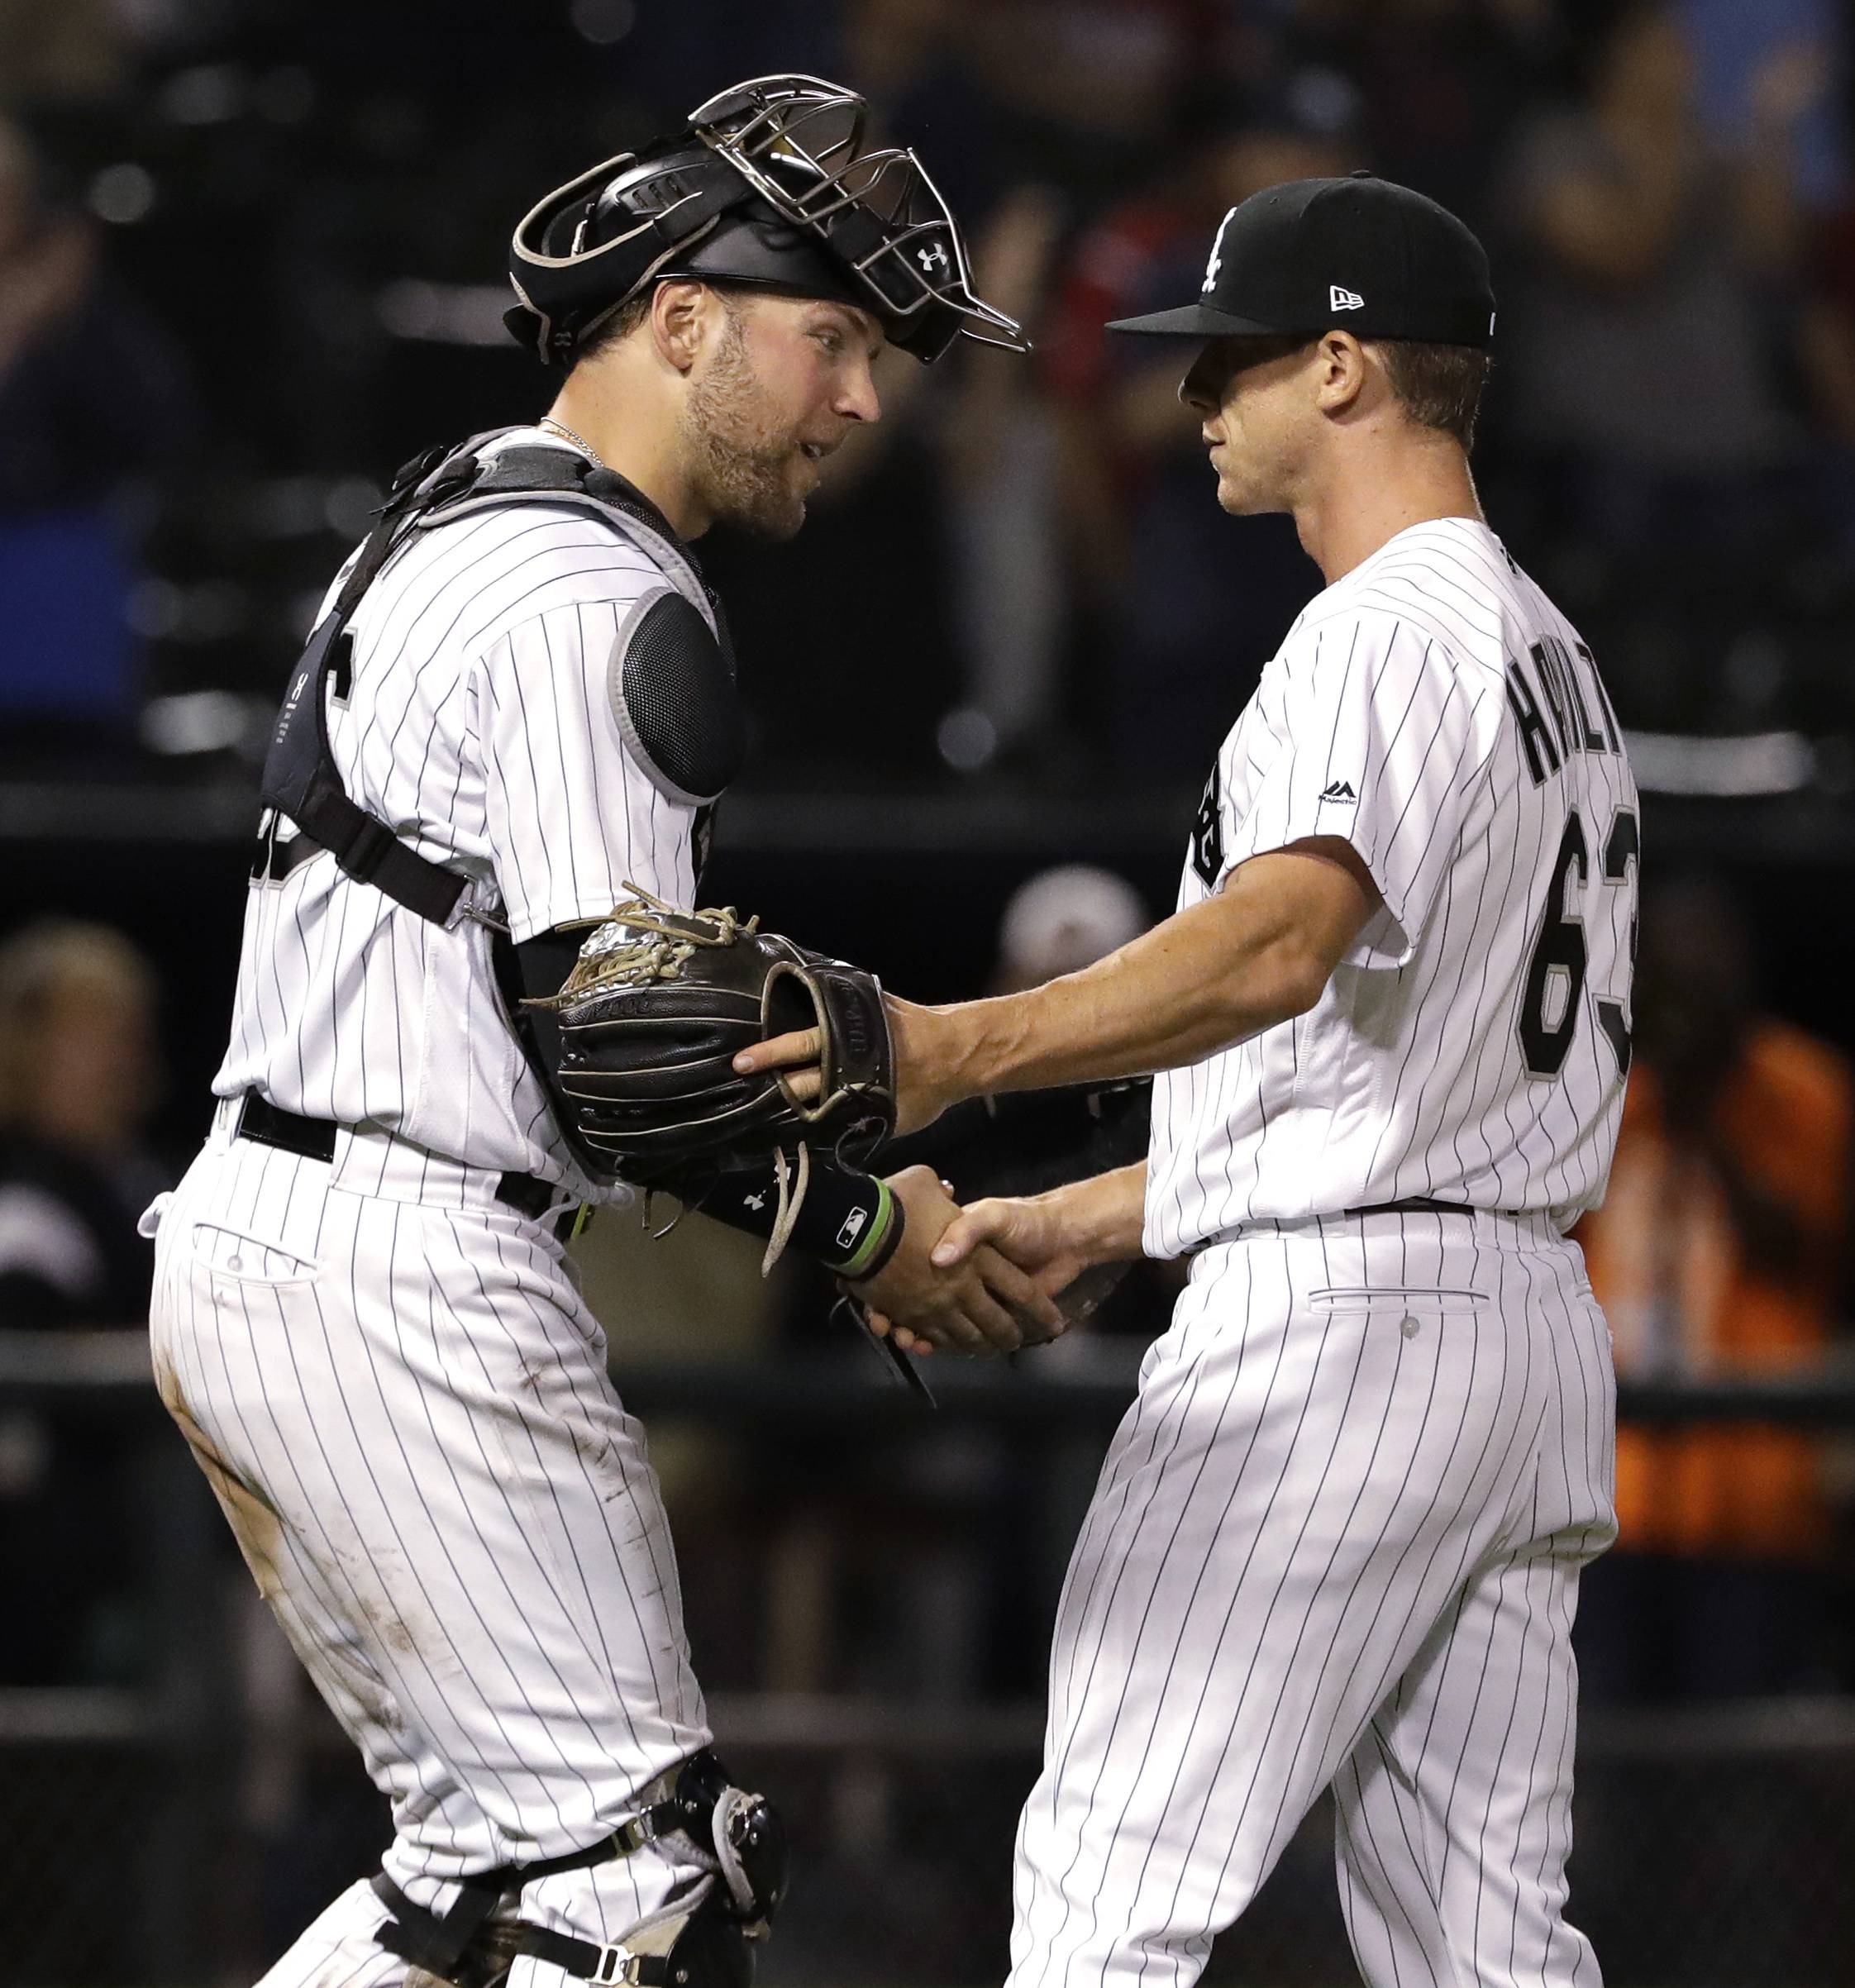 Chicago White Sox relief pitcher Ian Hamilton, right, celebrates with catcher Kevan Smith after the White Sox defeated the Boston Red Sox 6-1 in a baseball game, early Saturday, Sept. 1, 2018, in Chicago. (AP Photo/Nam Y. Huh)